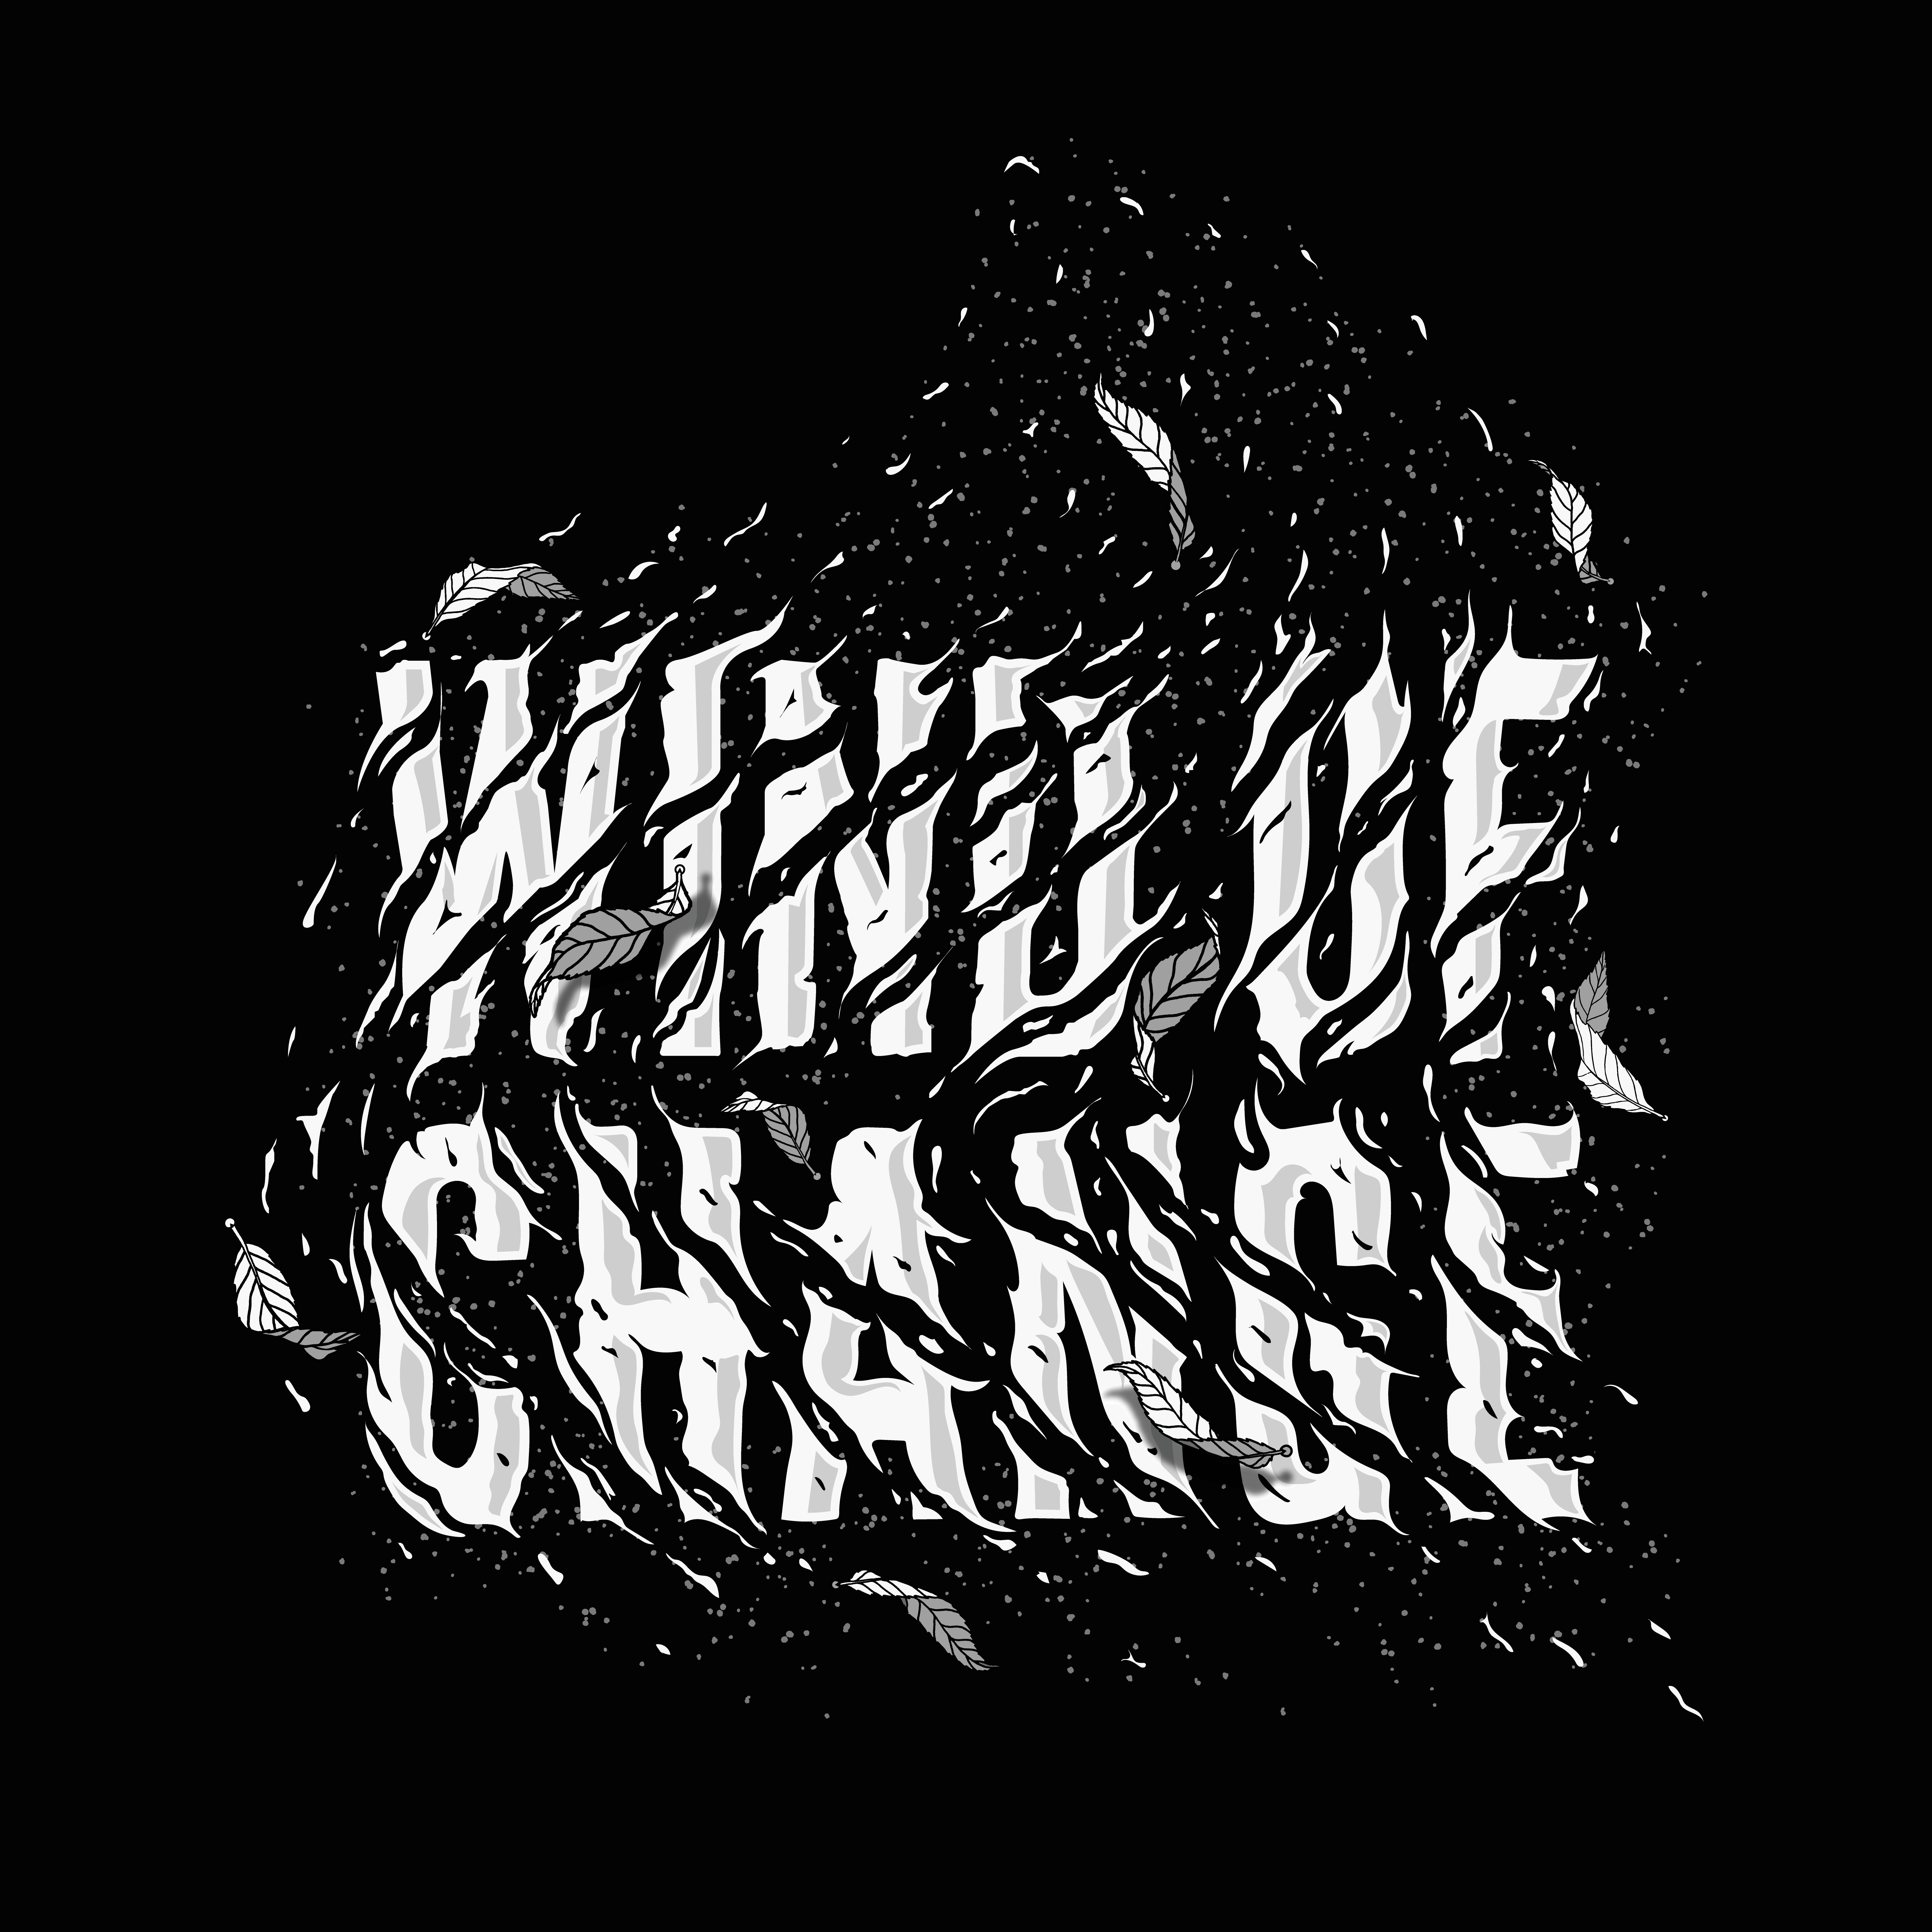 Wind Of Change - Bruno do Nascimento